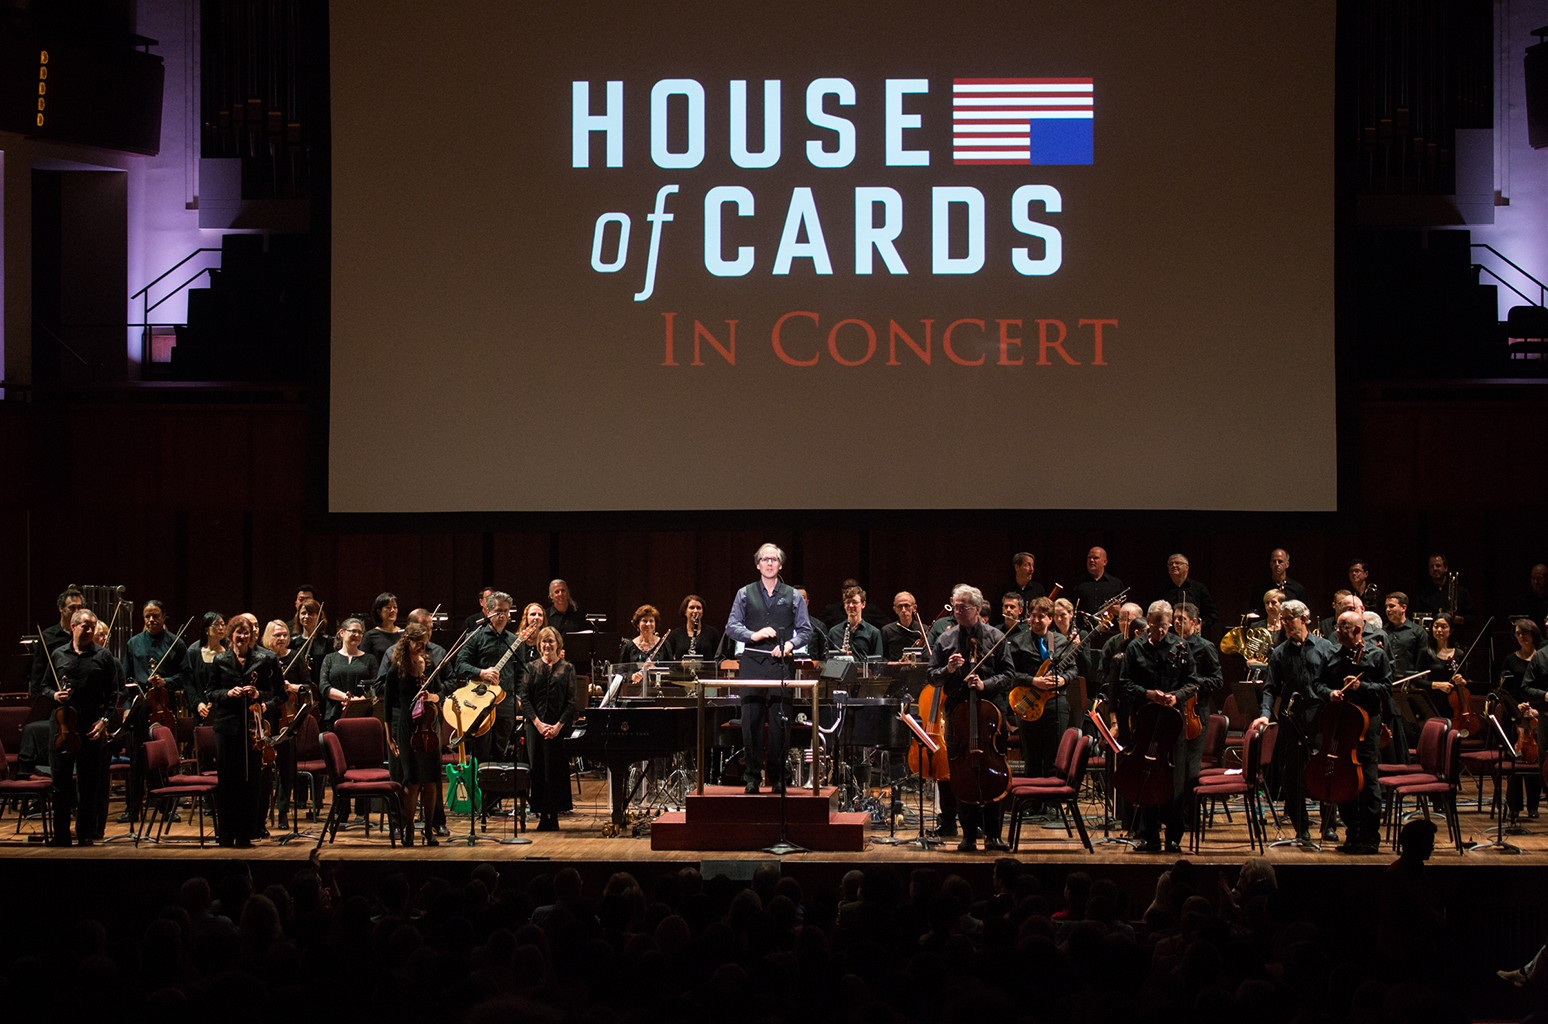 Jeff Beal performs the House of Cards soundtrack